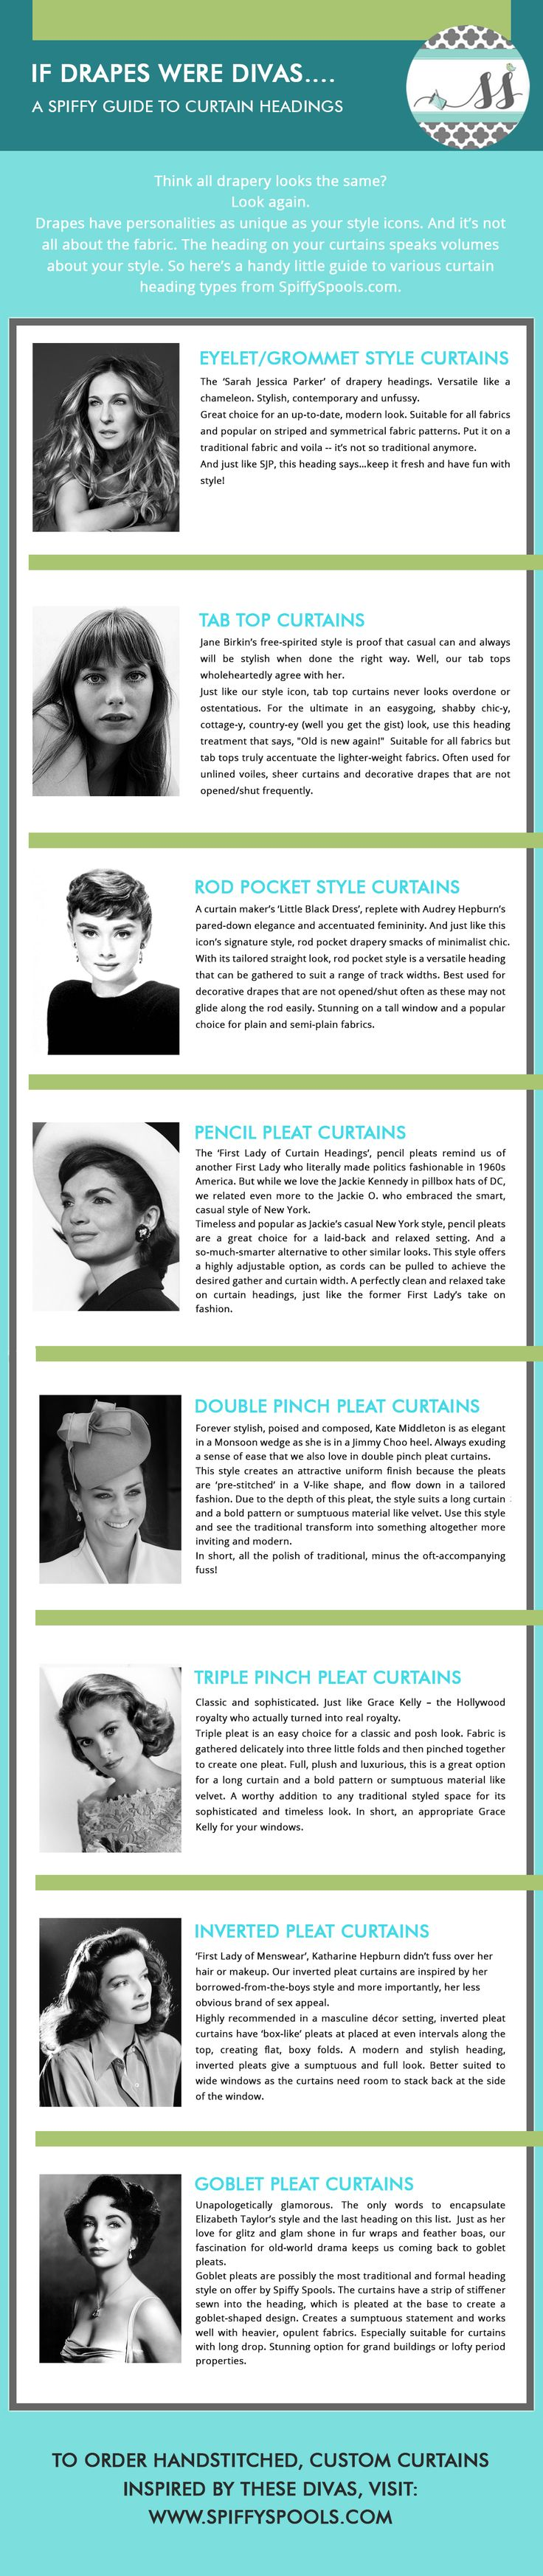 Best 25 curtain headings ideas only on pinterest for Spiffy spools